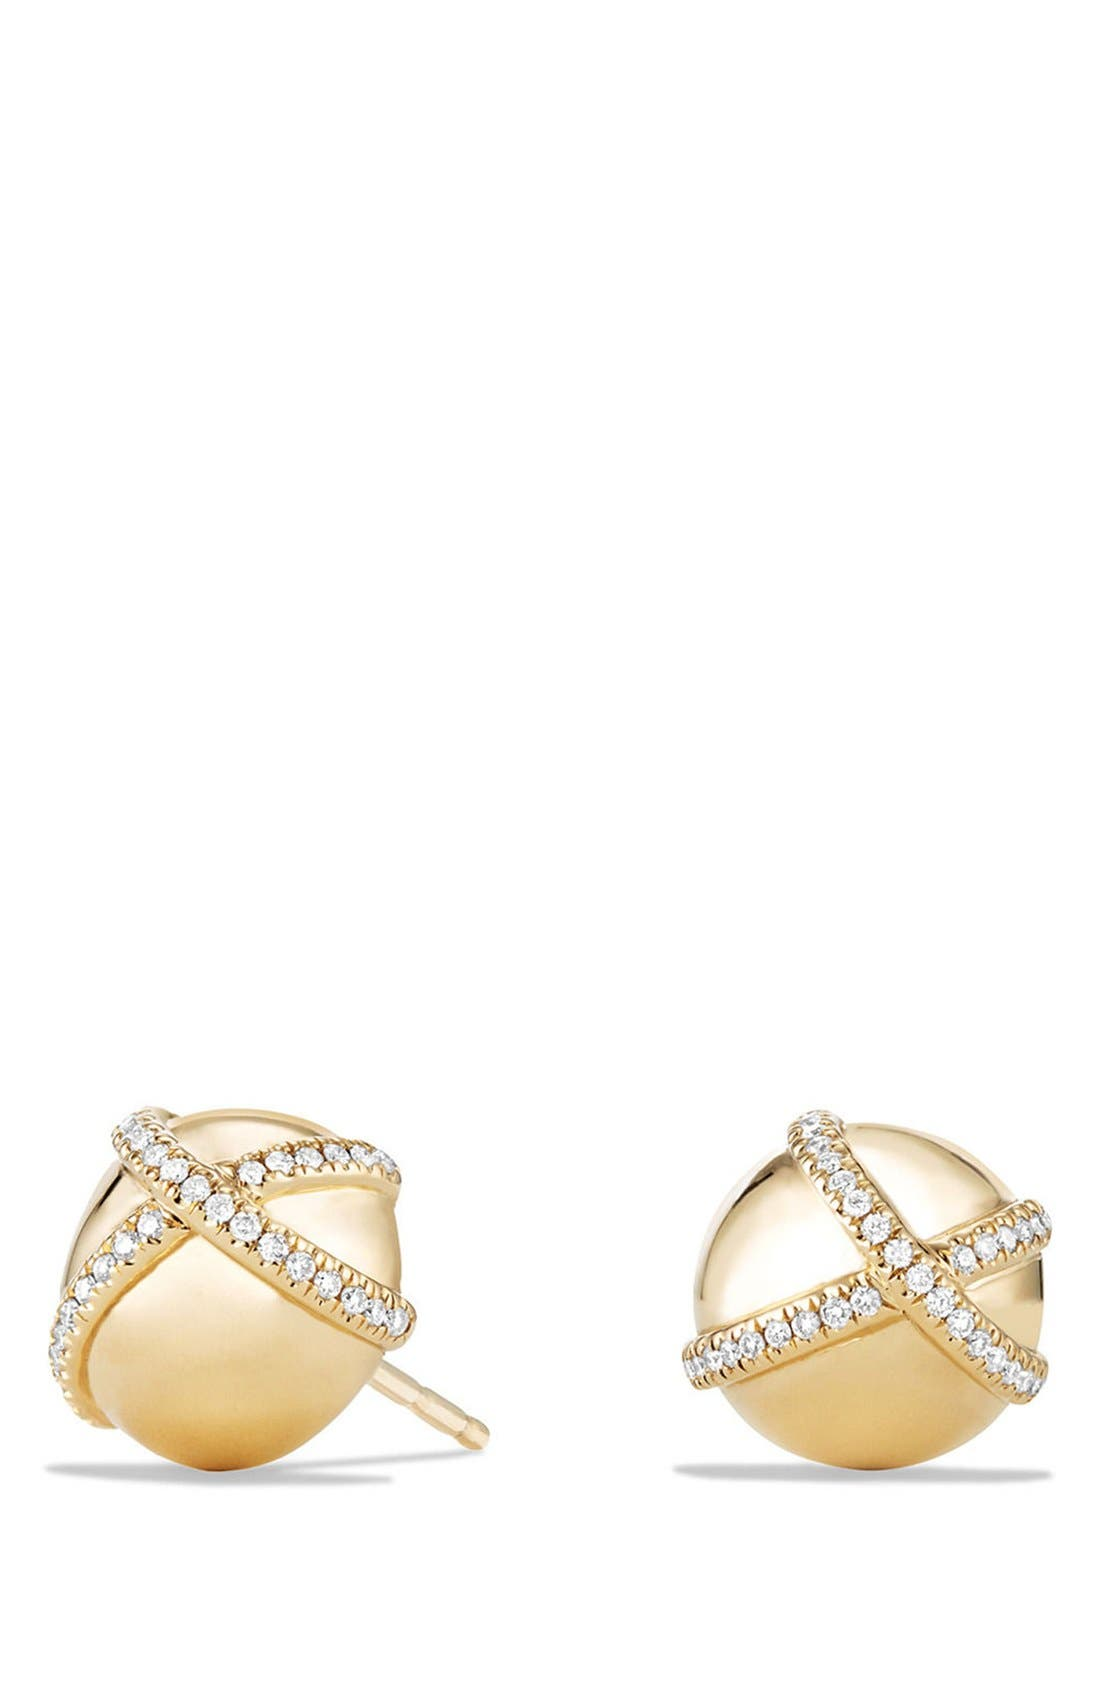 'Solari' Wrap Stud Earrings with Pavé Diamonds in 18K Gold,                         Main,                         color, YELLOW GOLD